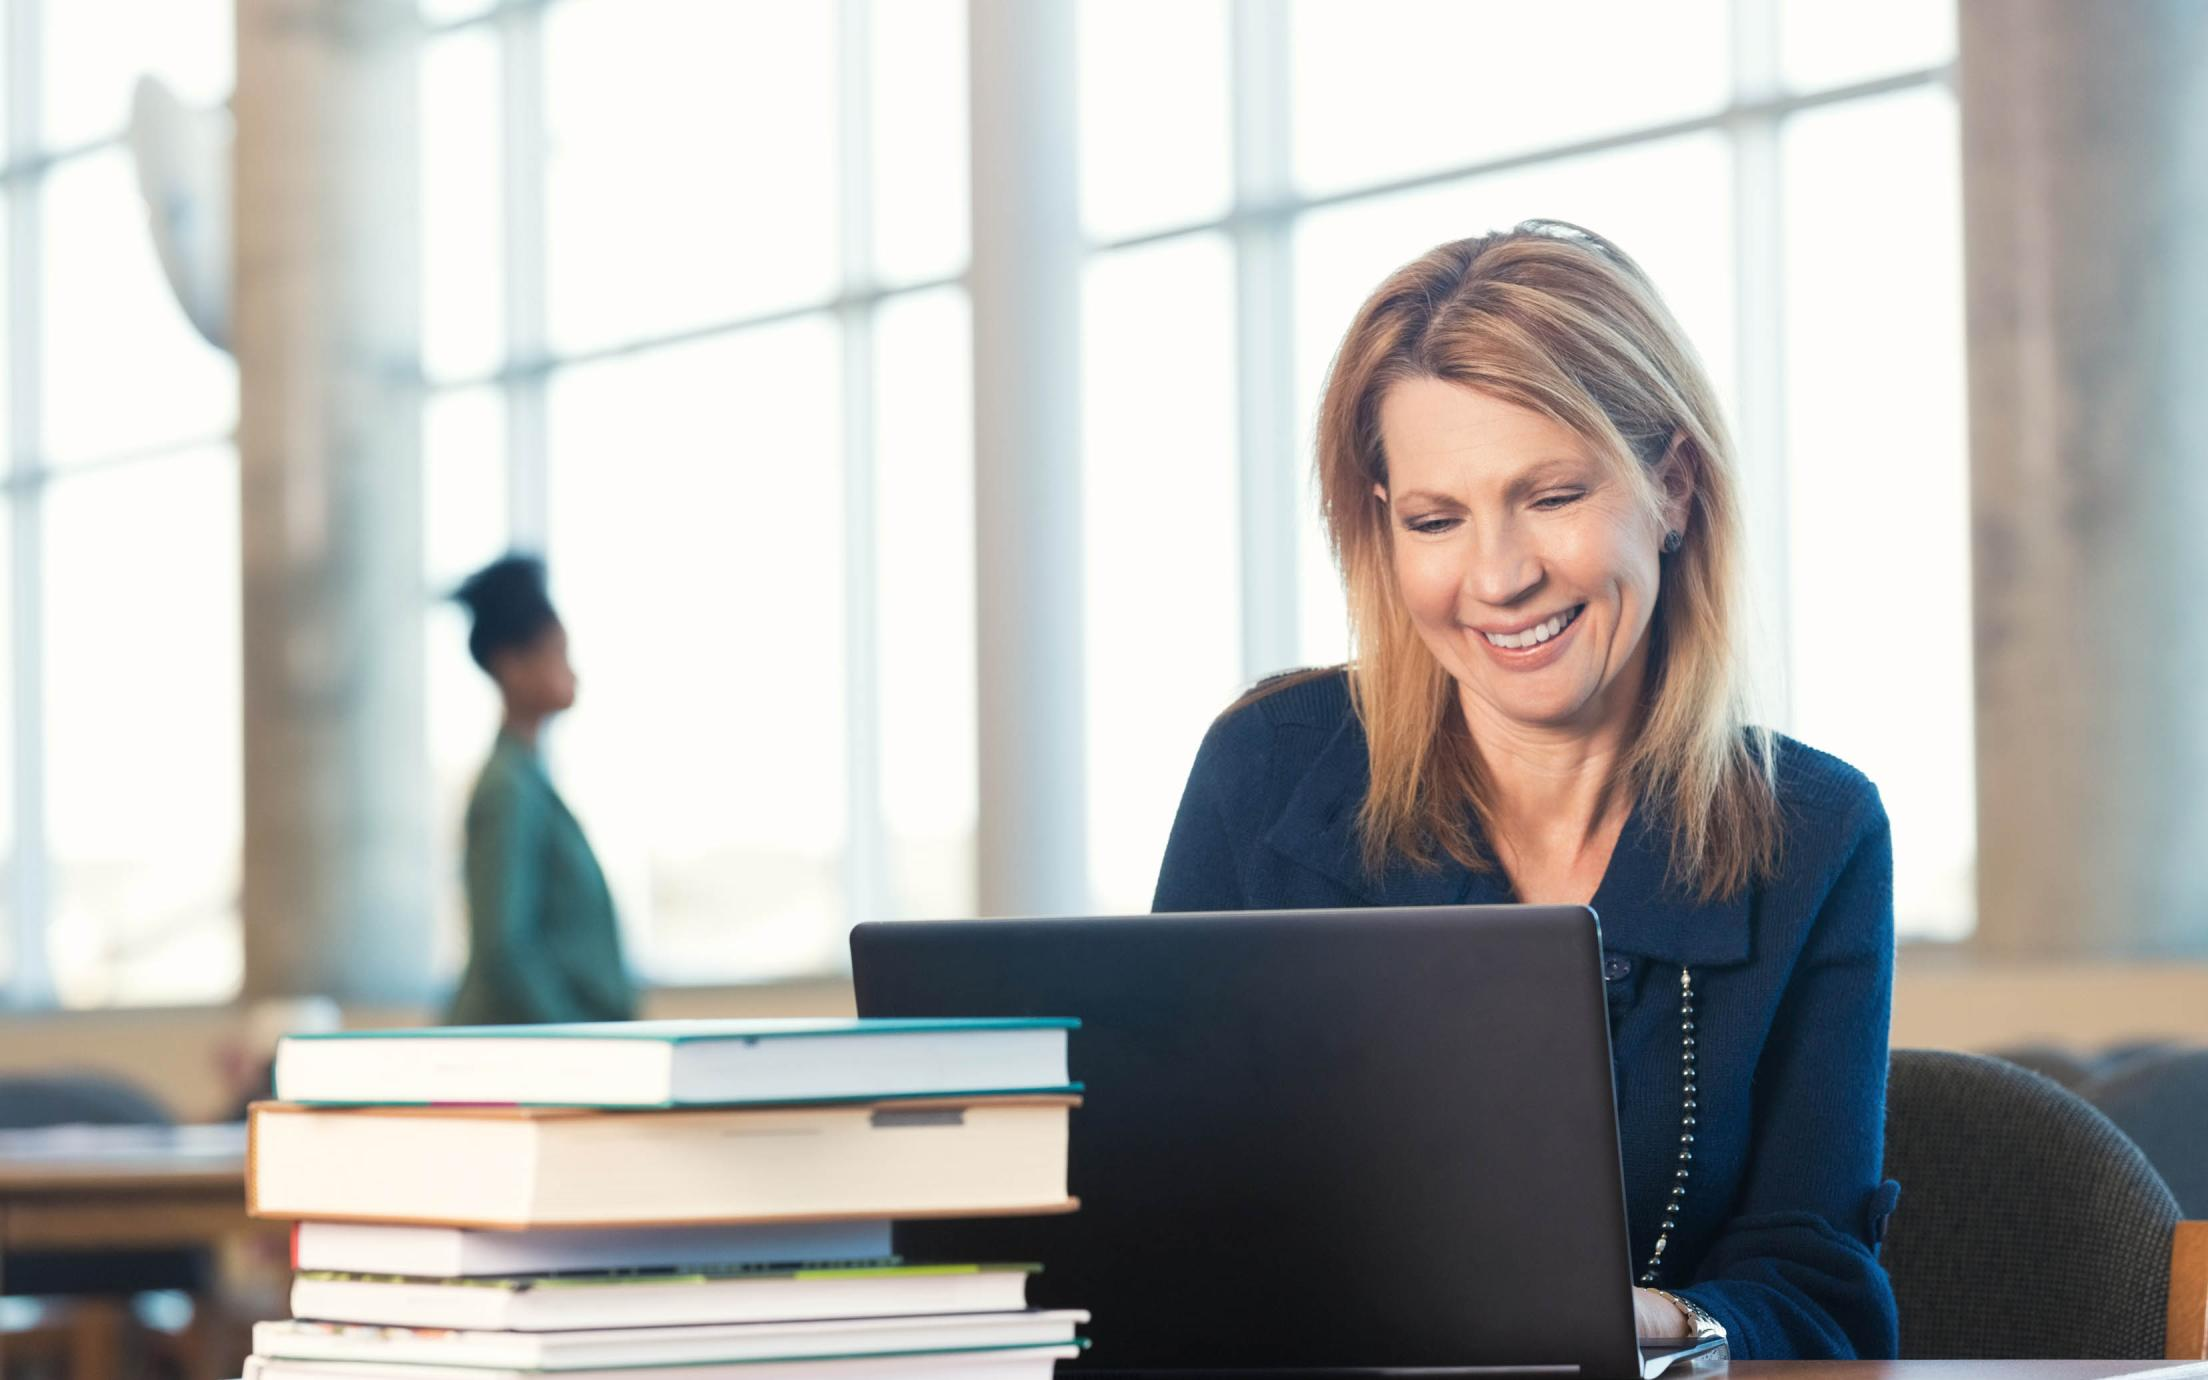 An adult student of the Applied Business Technology - Online program